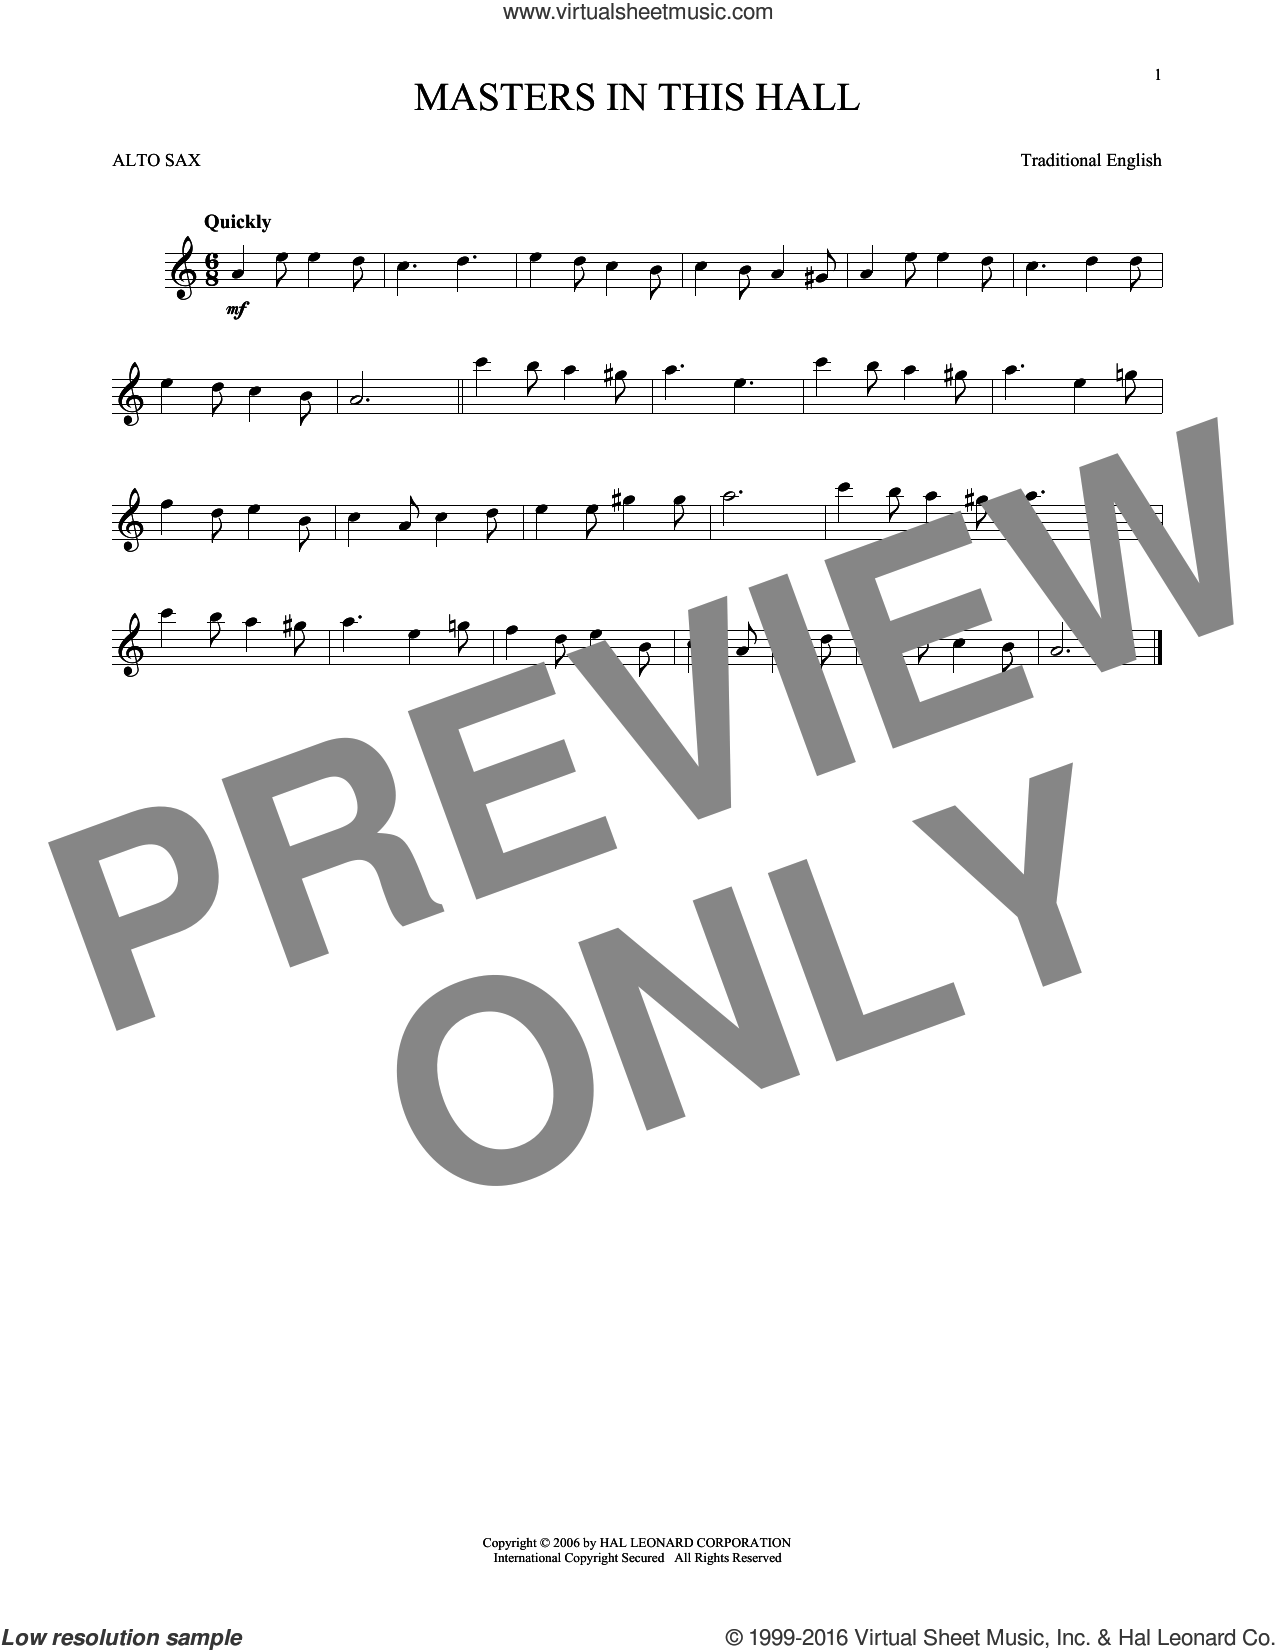 Masters In This Hall sheet music for alto saxophone solo, intermediate skill level